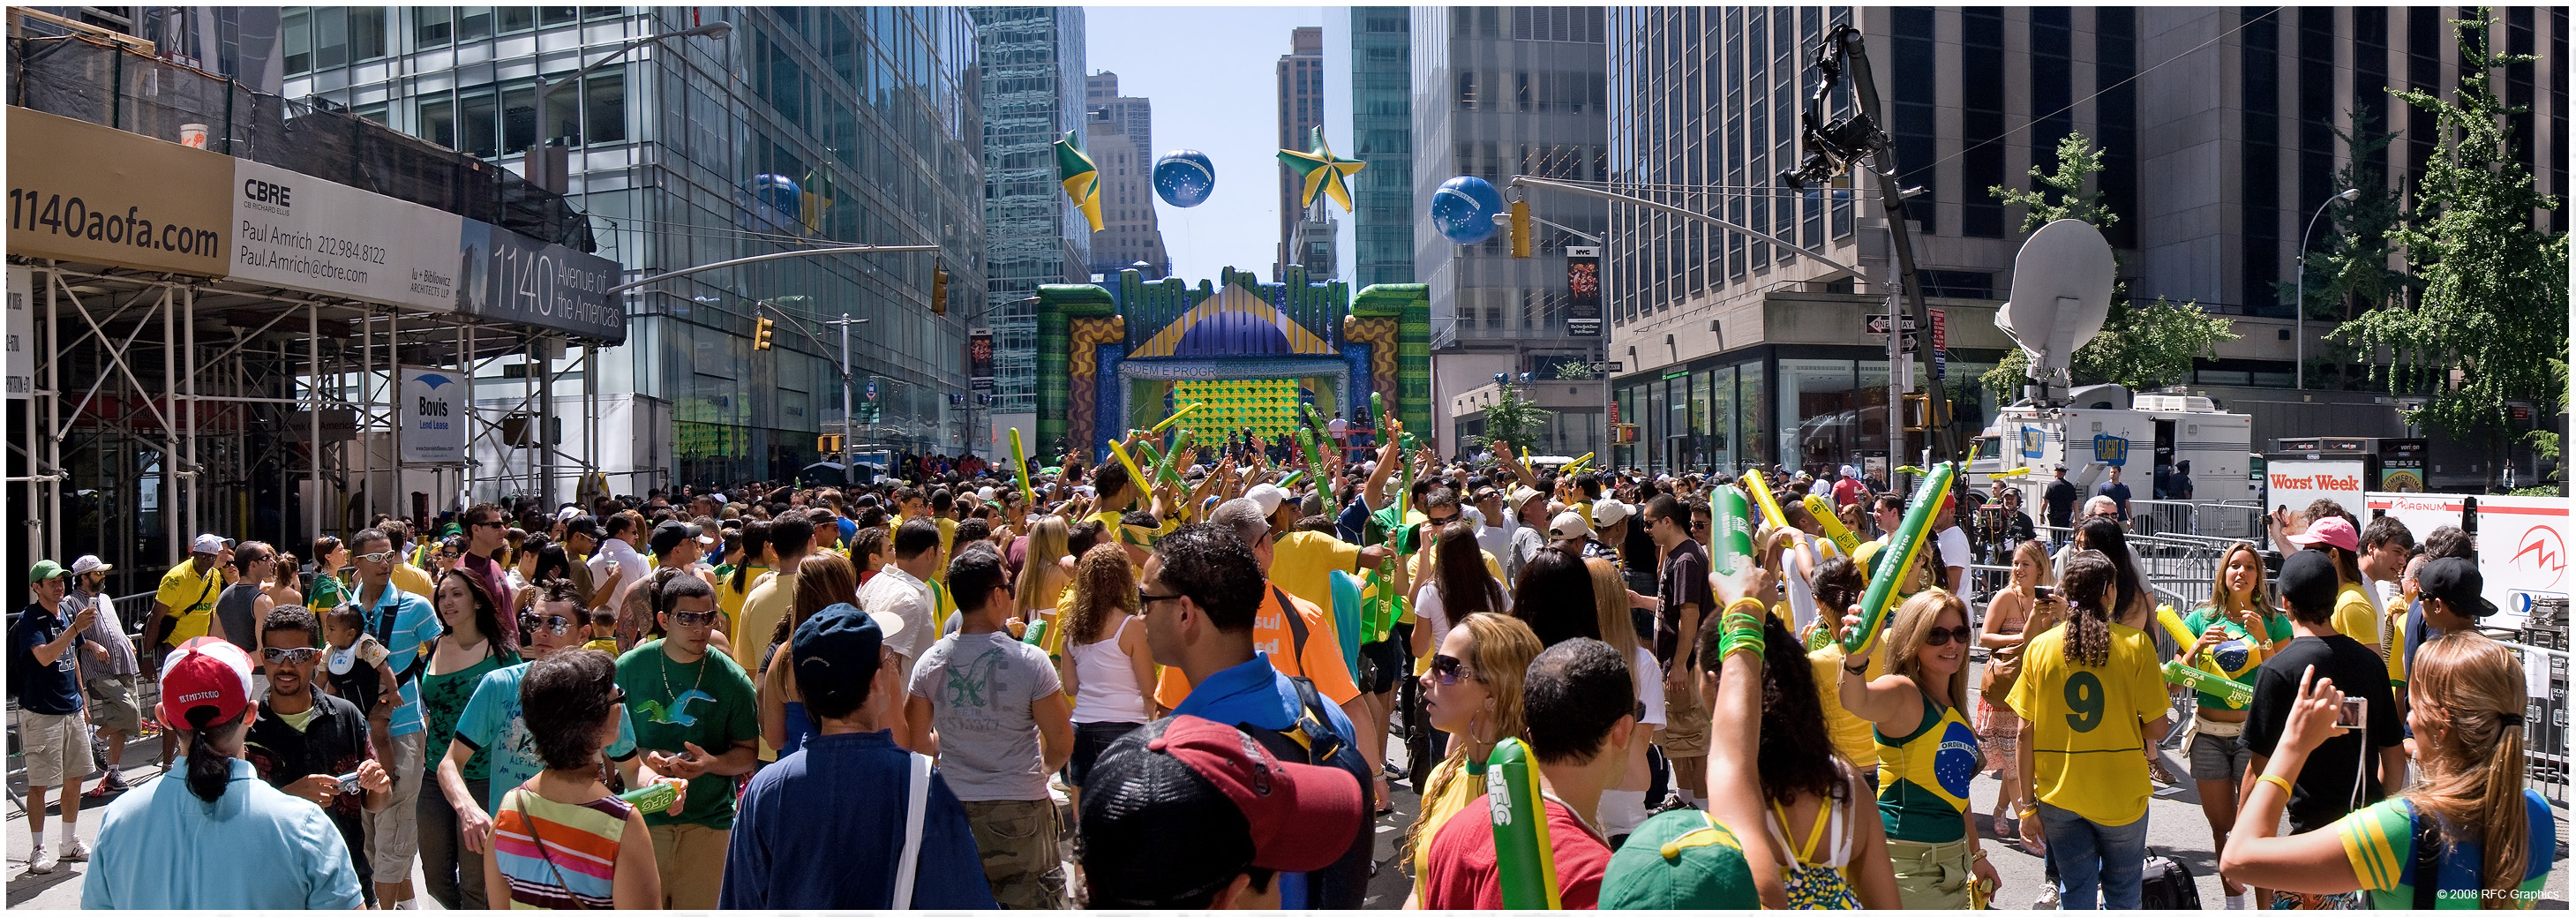 The 24th Annual Brazilian Day Festival Panorama